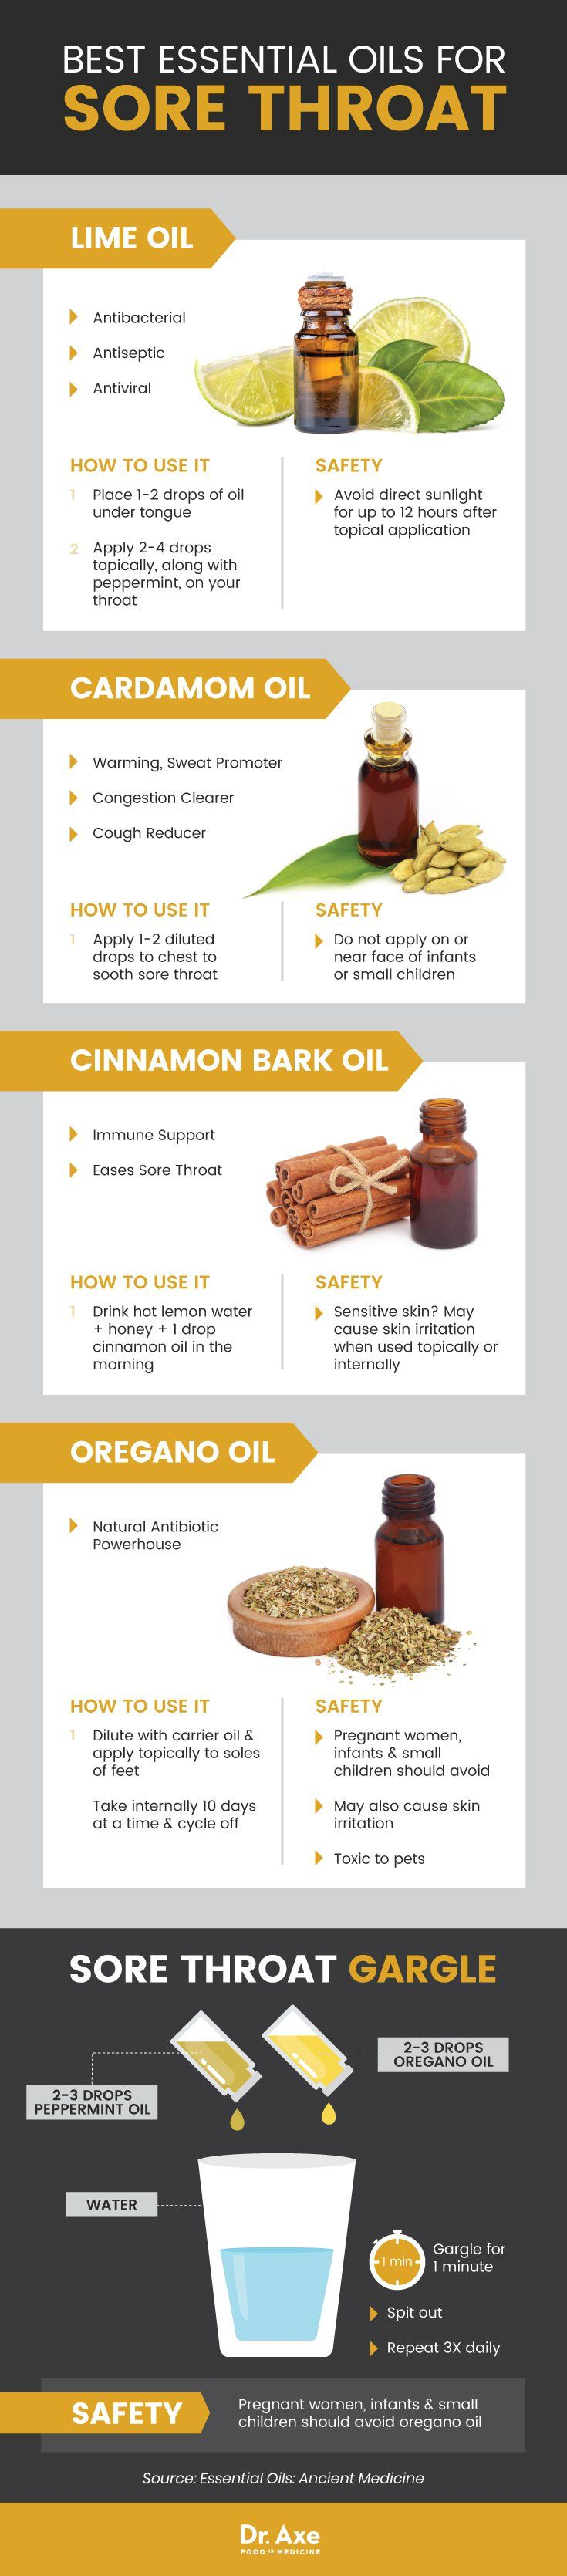 Best essential oils for sore throat - Dr. Axe